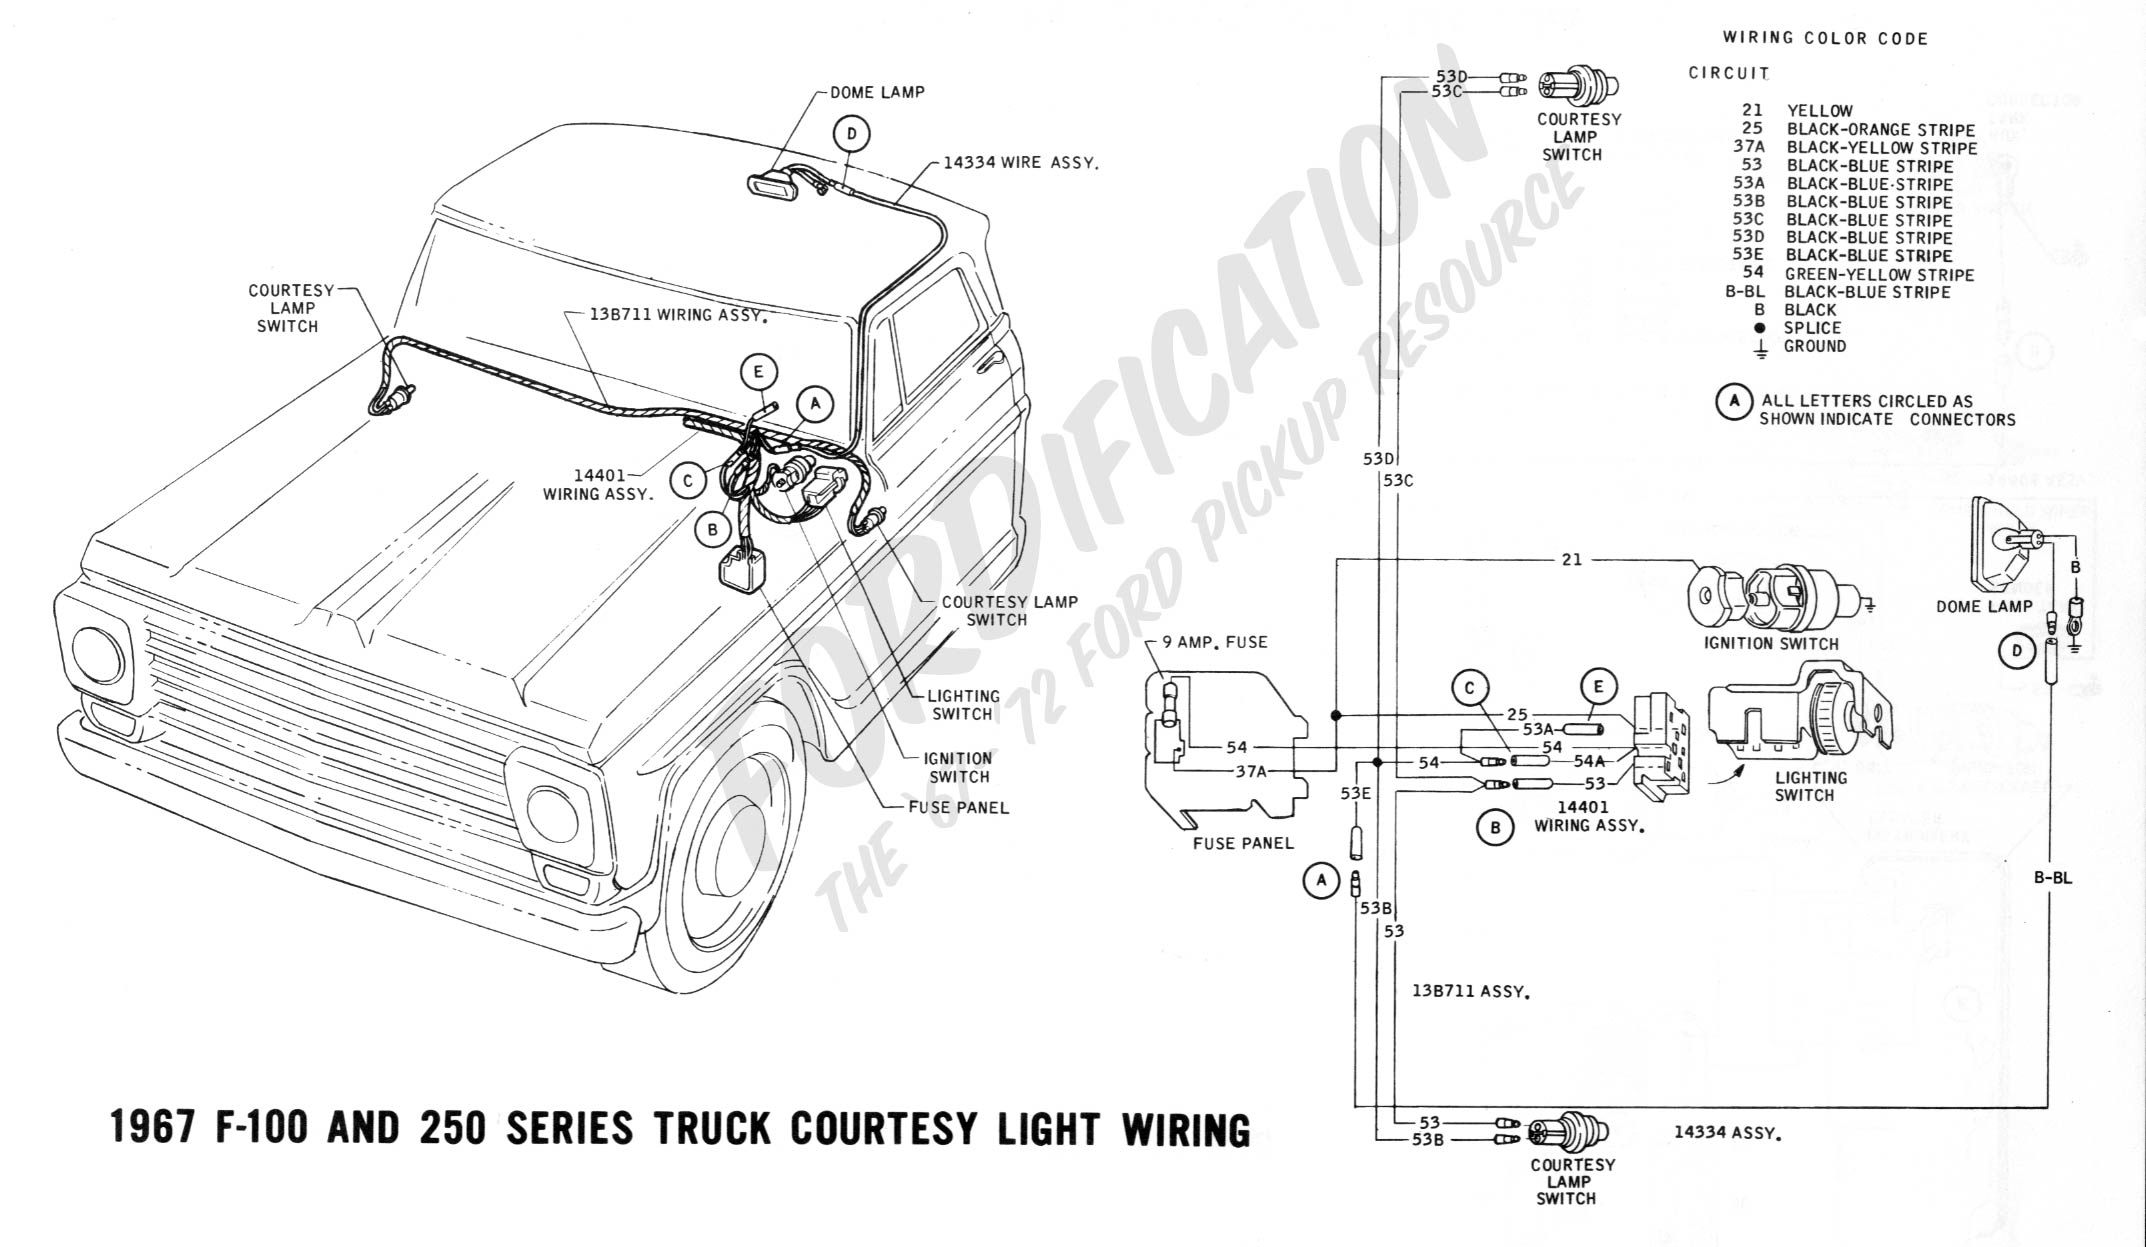 wiring 1967courtesylight wiring in ignition switch in 1966 f100 ford truck enthusiasts forums  at bakdesigns.co